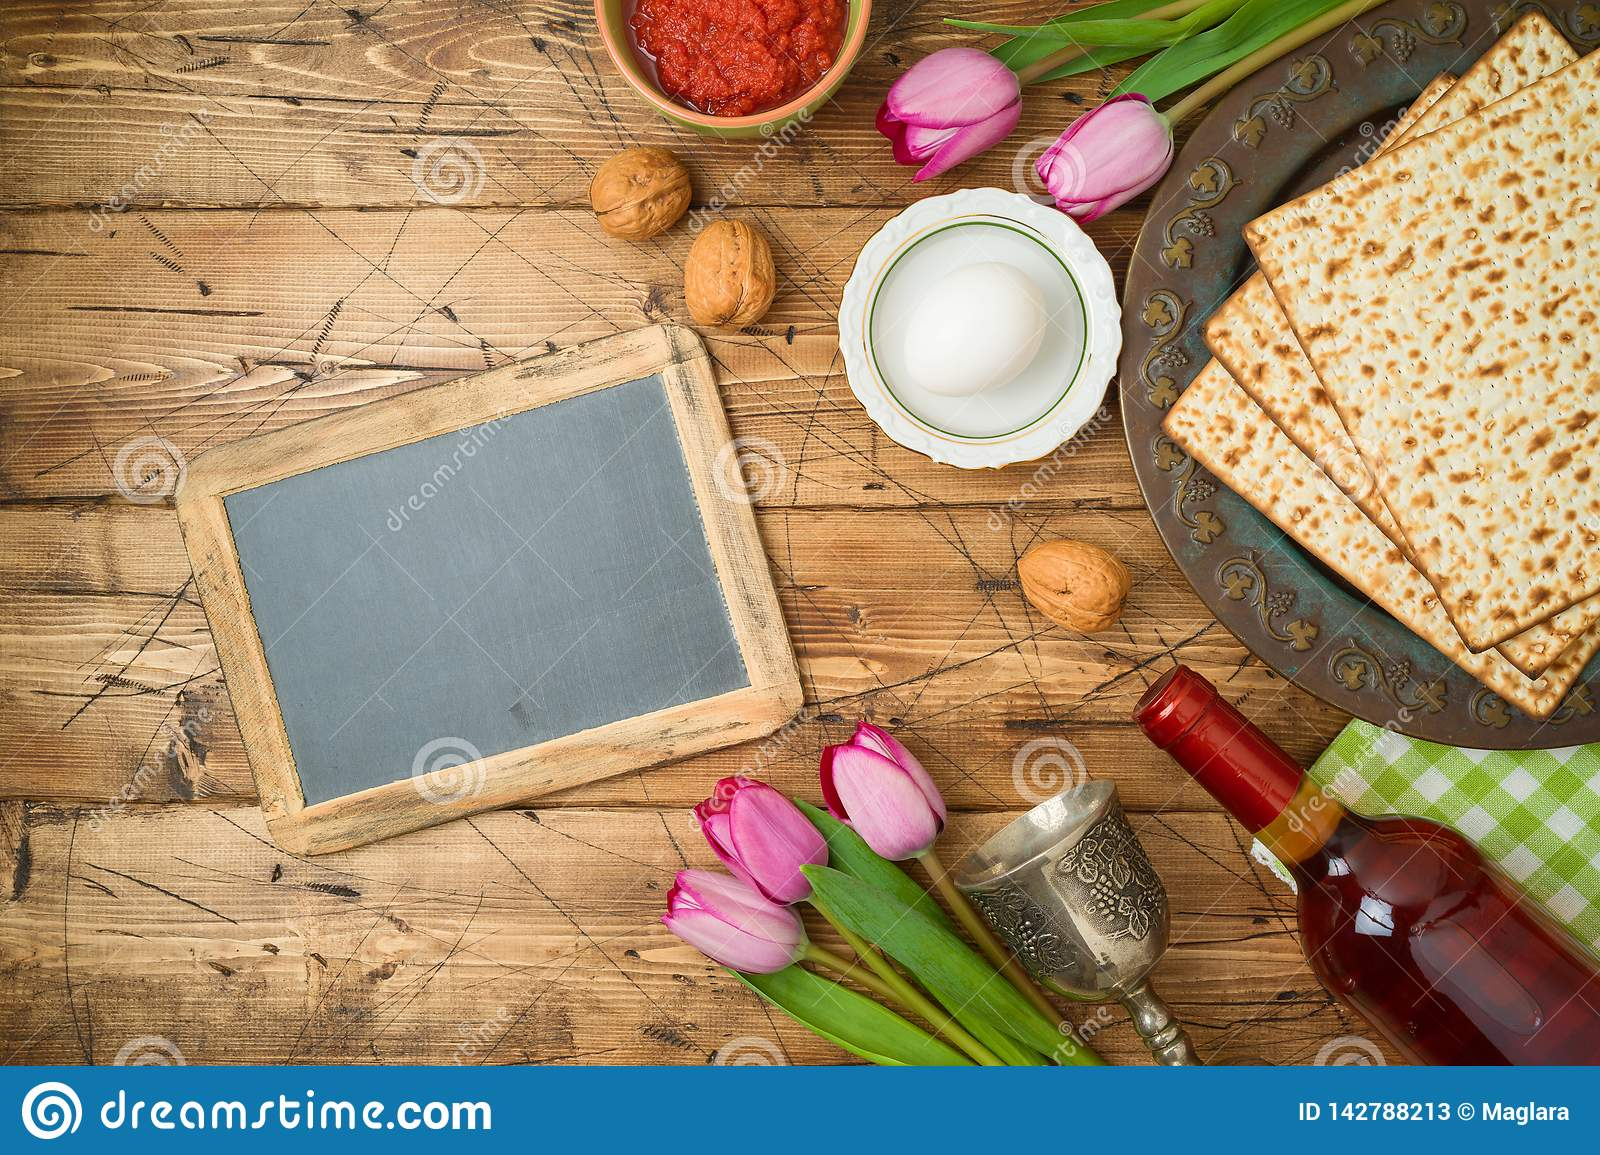 Jewish Holiday Passover Background With Matzo Seder Plate Wine Tulip Flowers And Chalkboard On Wooden Table Stock Image Image Of Celebration Decoration 142788213